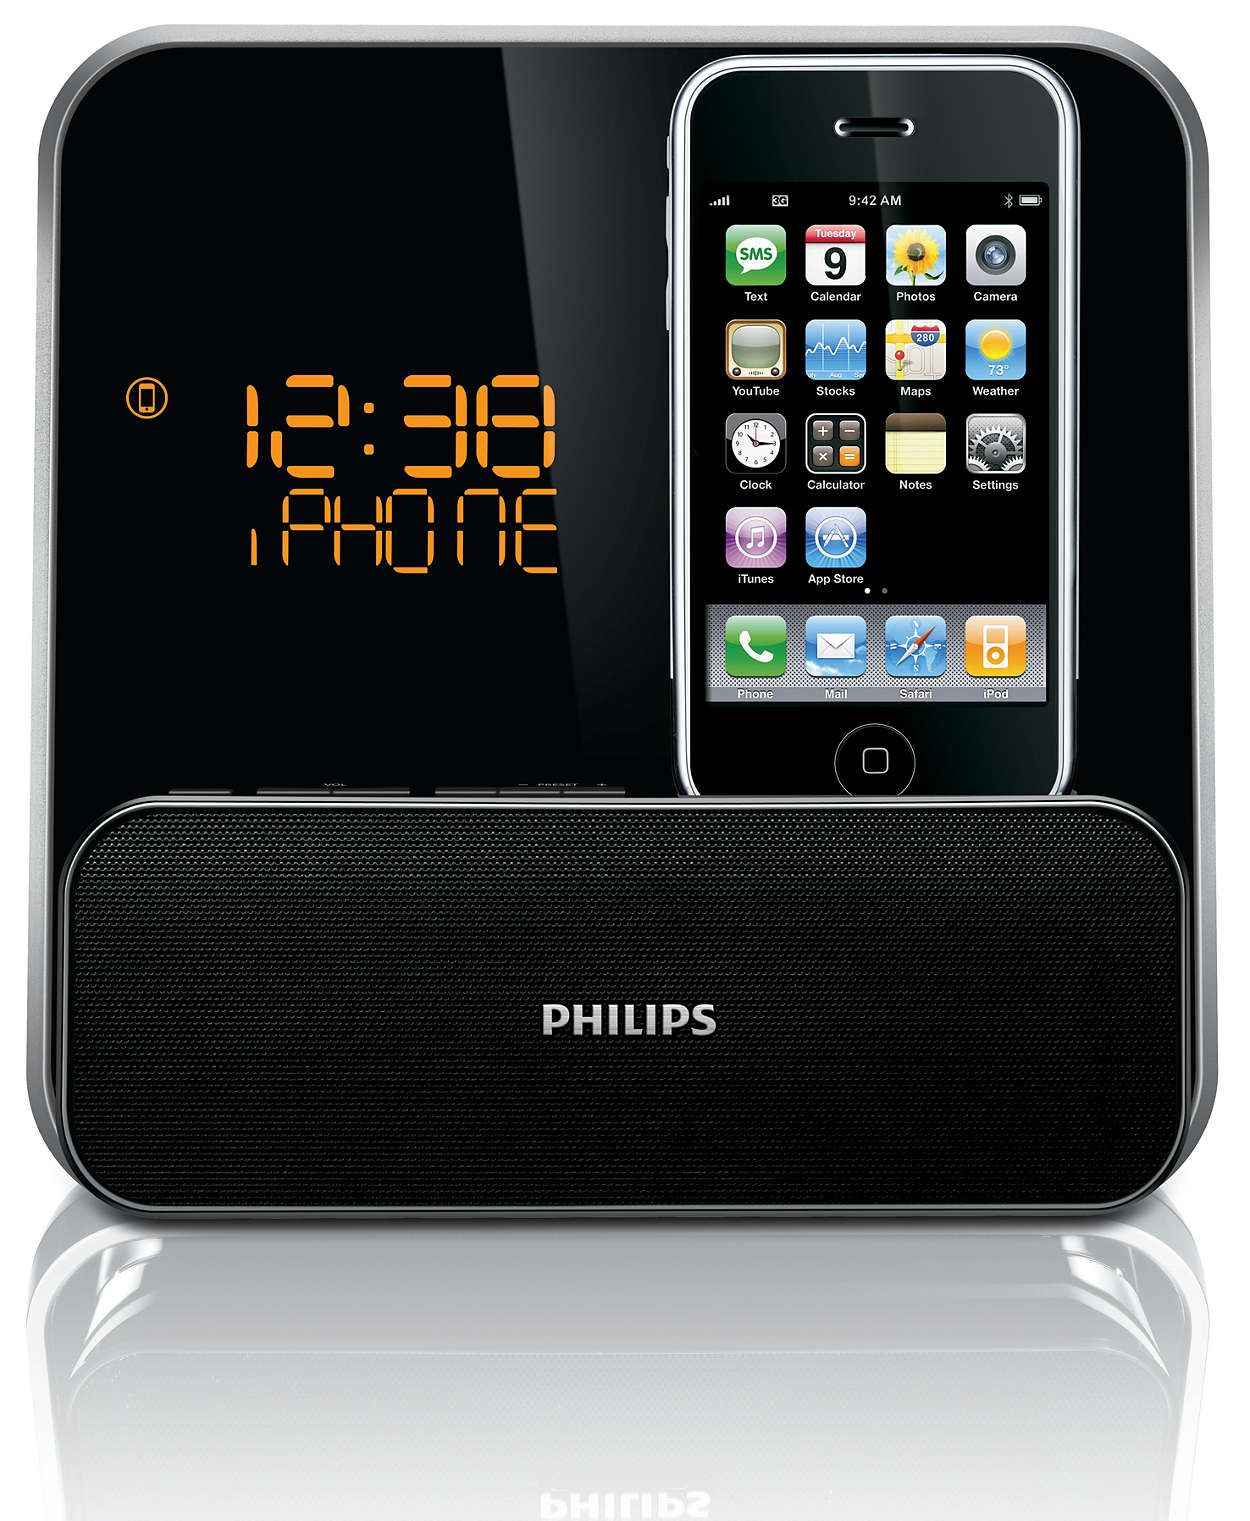 radio r veil pour ipod iphone dc315 12 philips. Black Bedroom Furniture Sets. Home Design Ideas